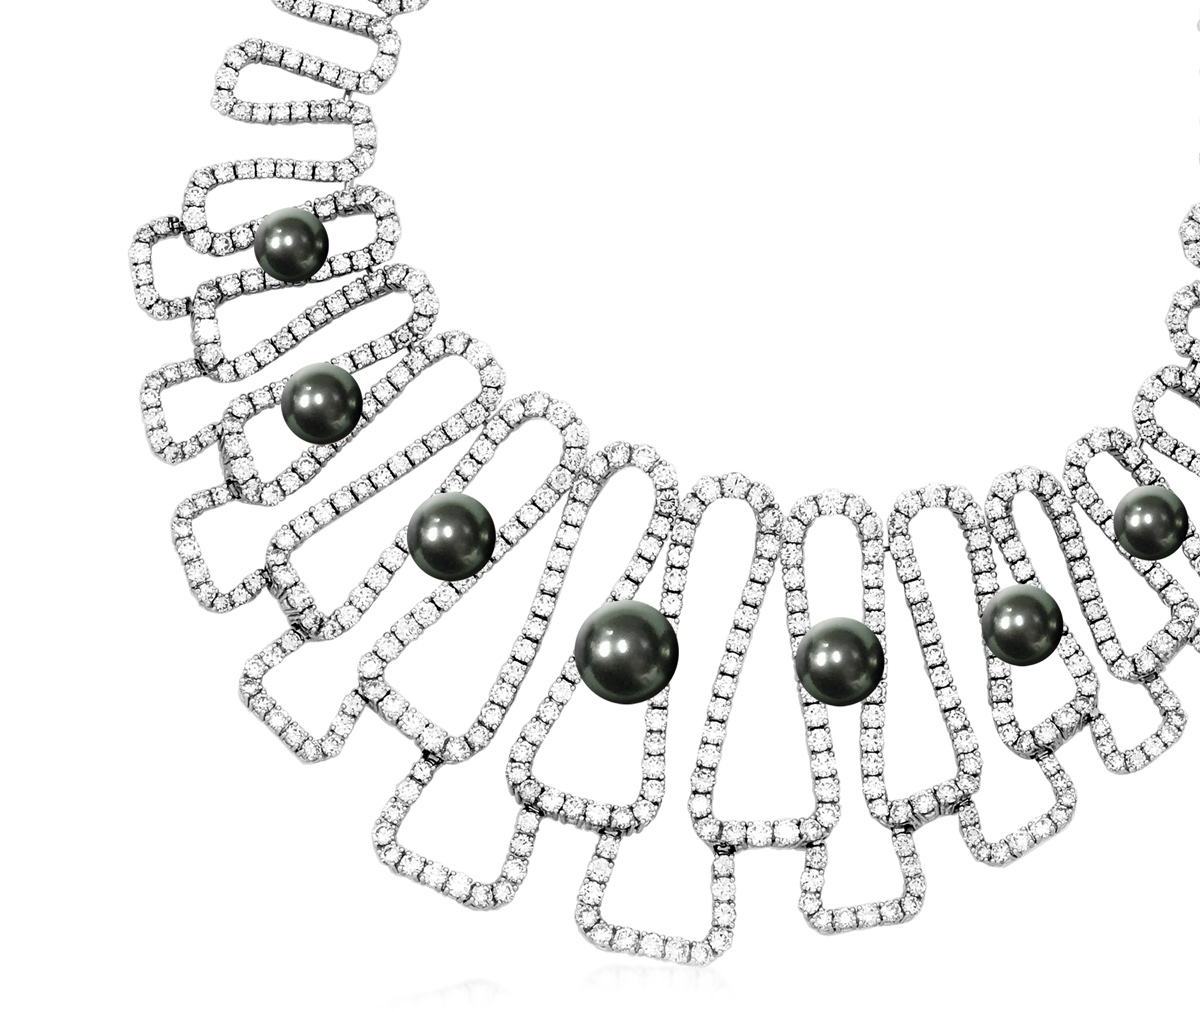 Qayten Tahiti Bliss necklace with Tahitian pearls and diamonds